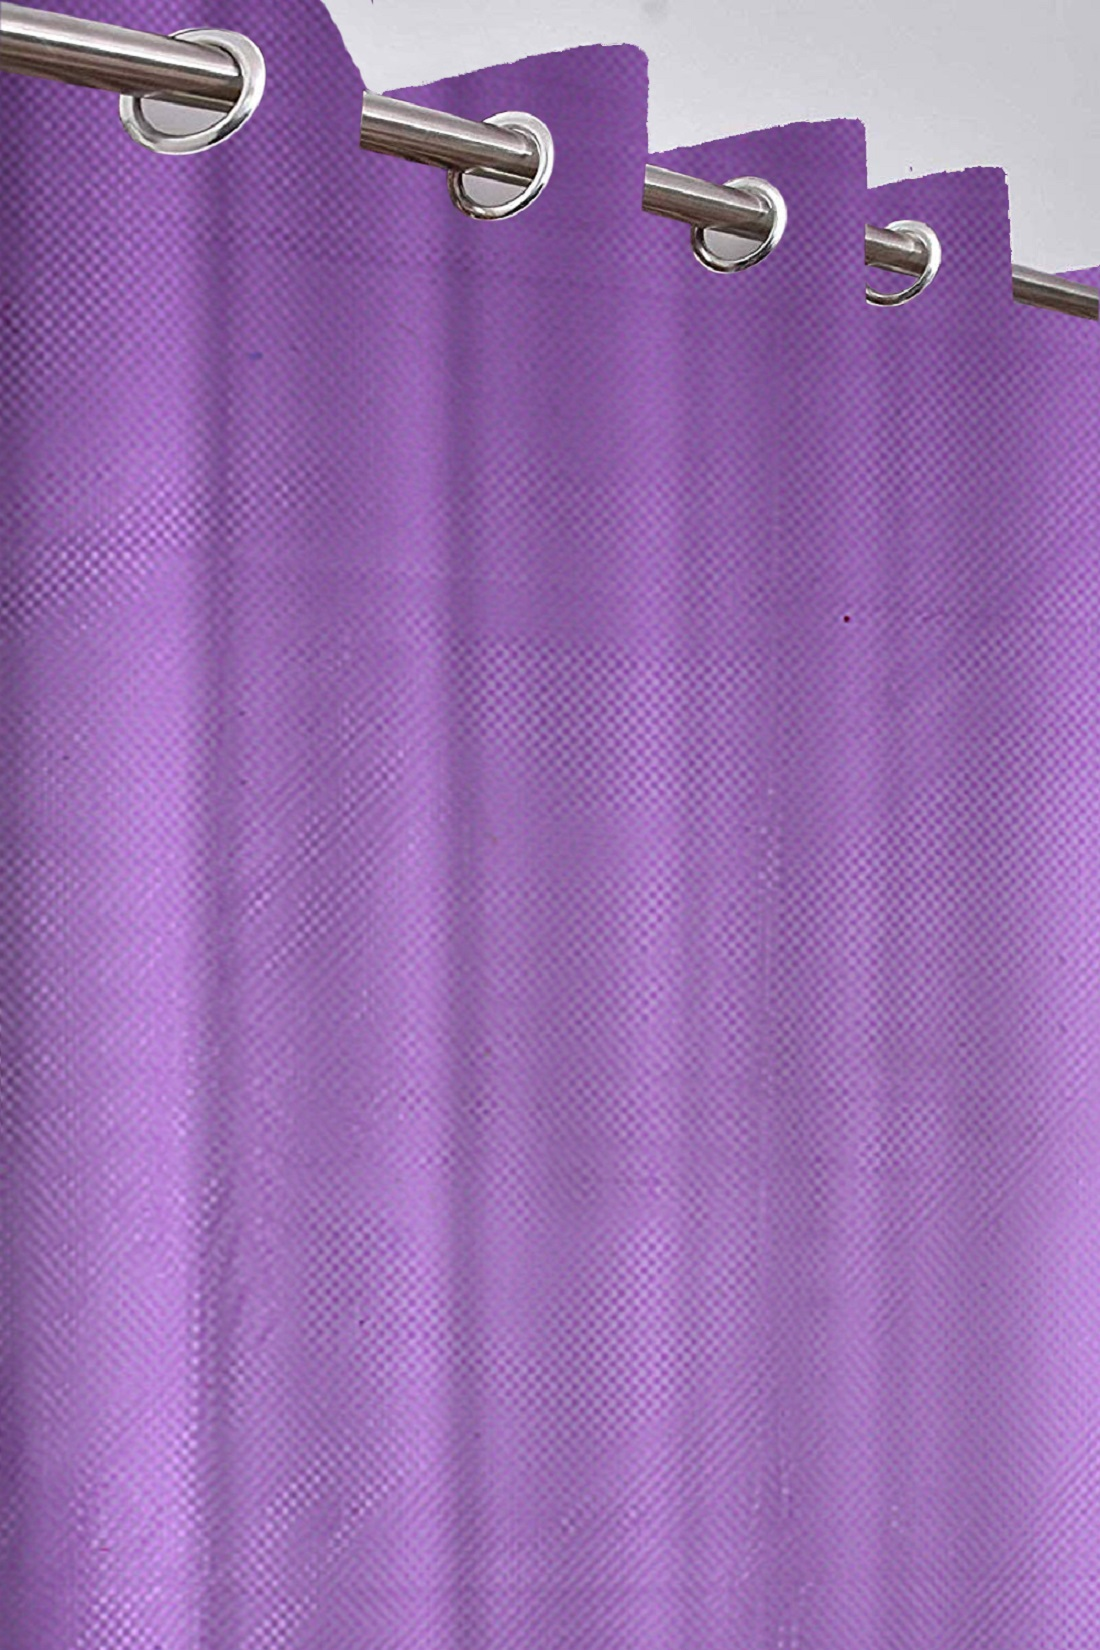 Kuber Industries Zig Zag Design 2 Pieces Sheer Door Curtains Linen Look Semi Transparent Voile Grommet Elegance Curtains for Living Dining Room, Bedroom Drapes 48 x 84 Inch Long, (Purple) - CTKTC40463